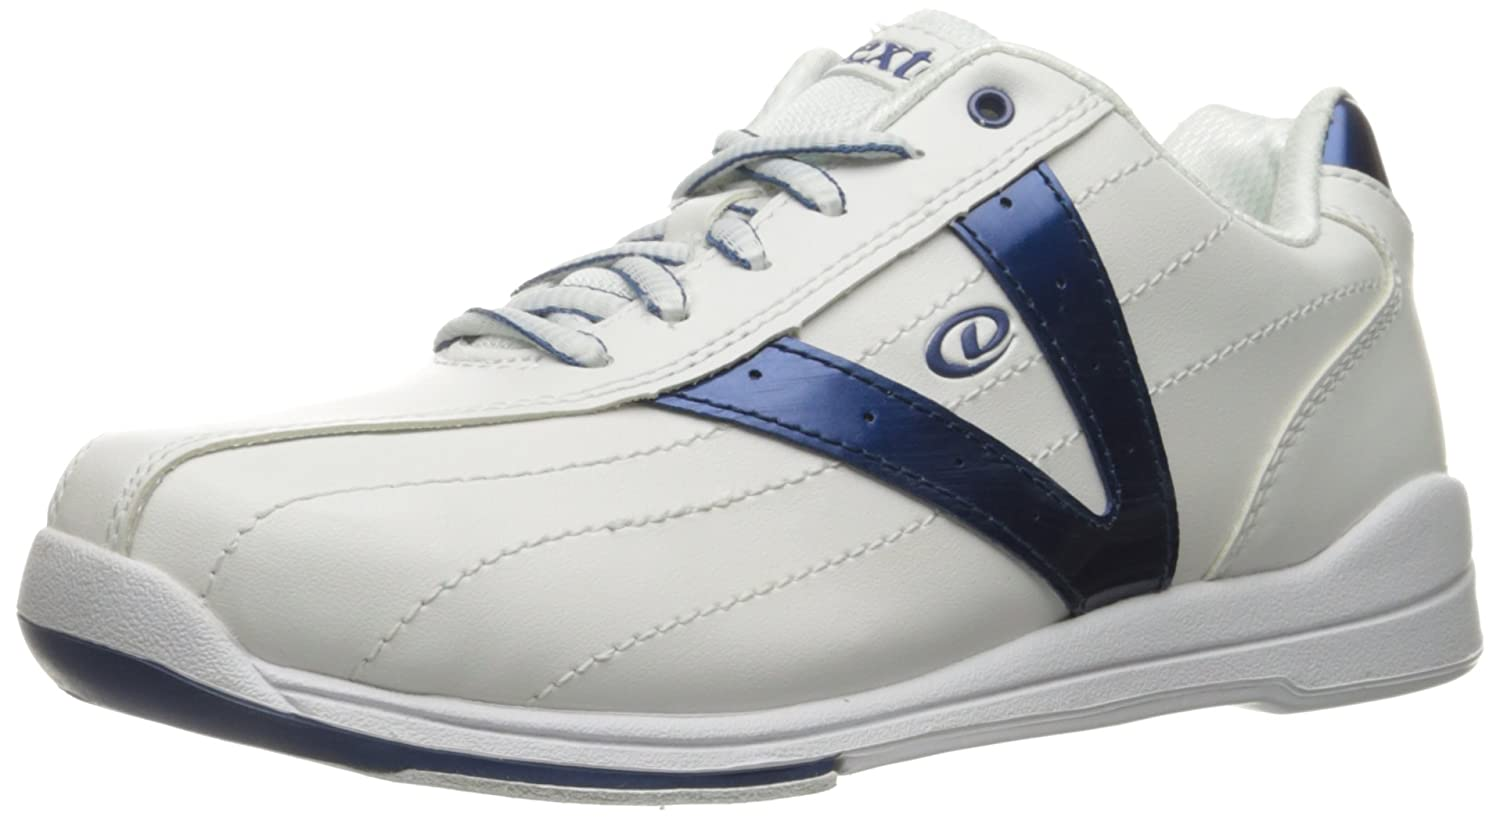 Dexter Vicky Bowling Shoes, White/Blue DEXT3 DX42608 100-P